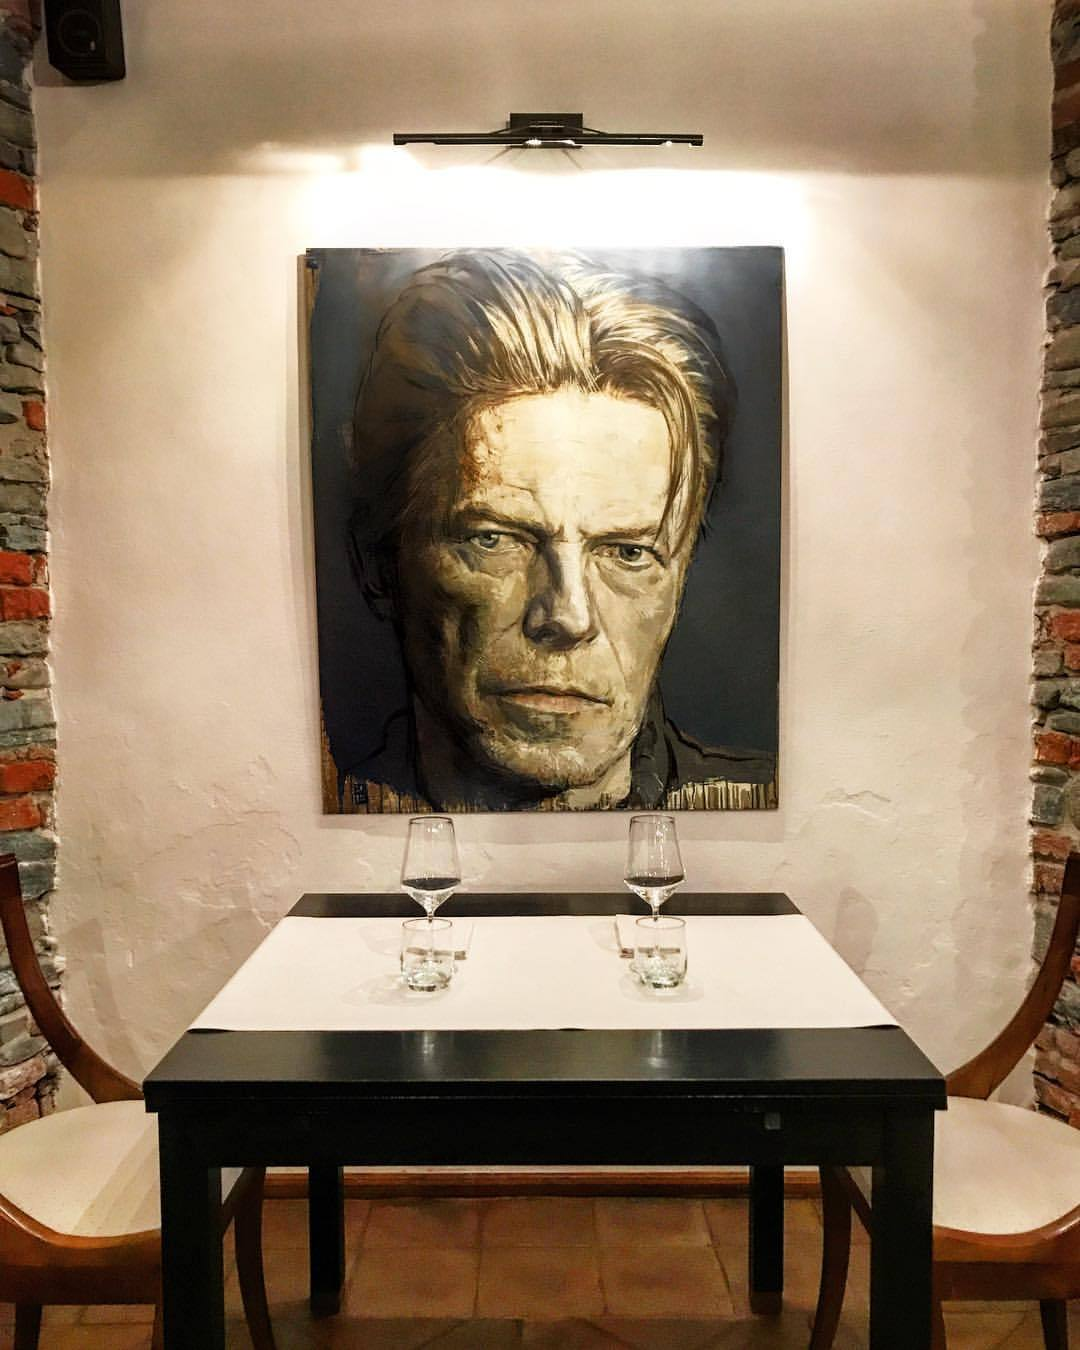 Dinner with Bowie.  -  #italy #piedmont #art #bowie #ziggystardust  (at Dogliani)